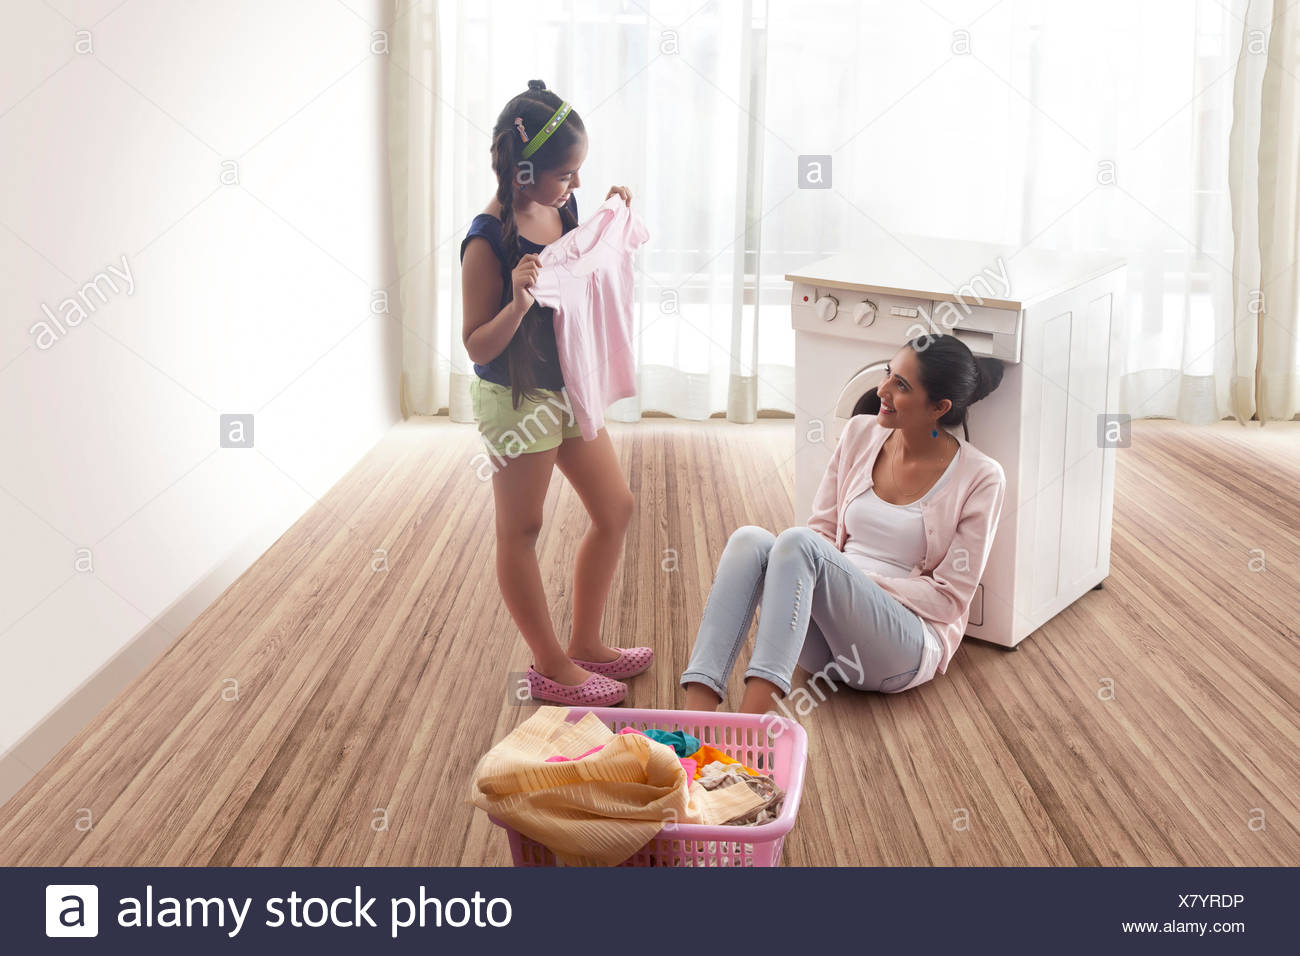 Daughter folding laundry and mother looking at her - Stock Image